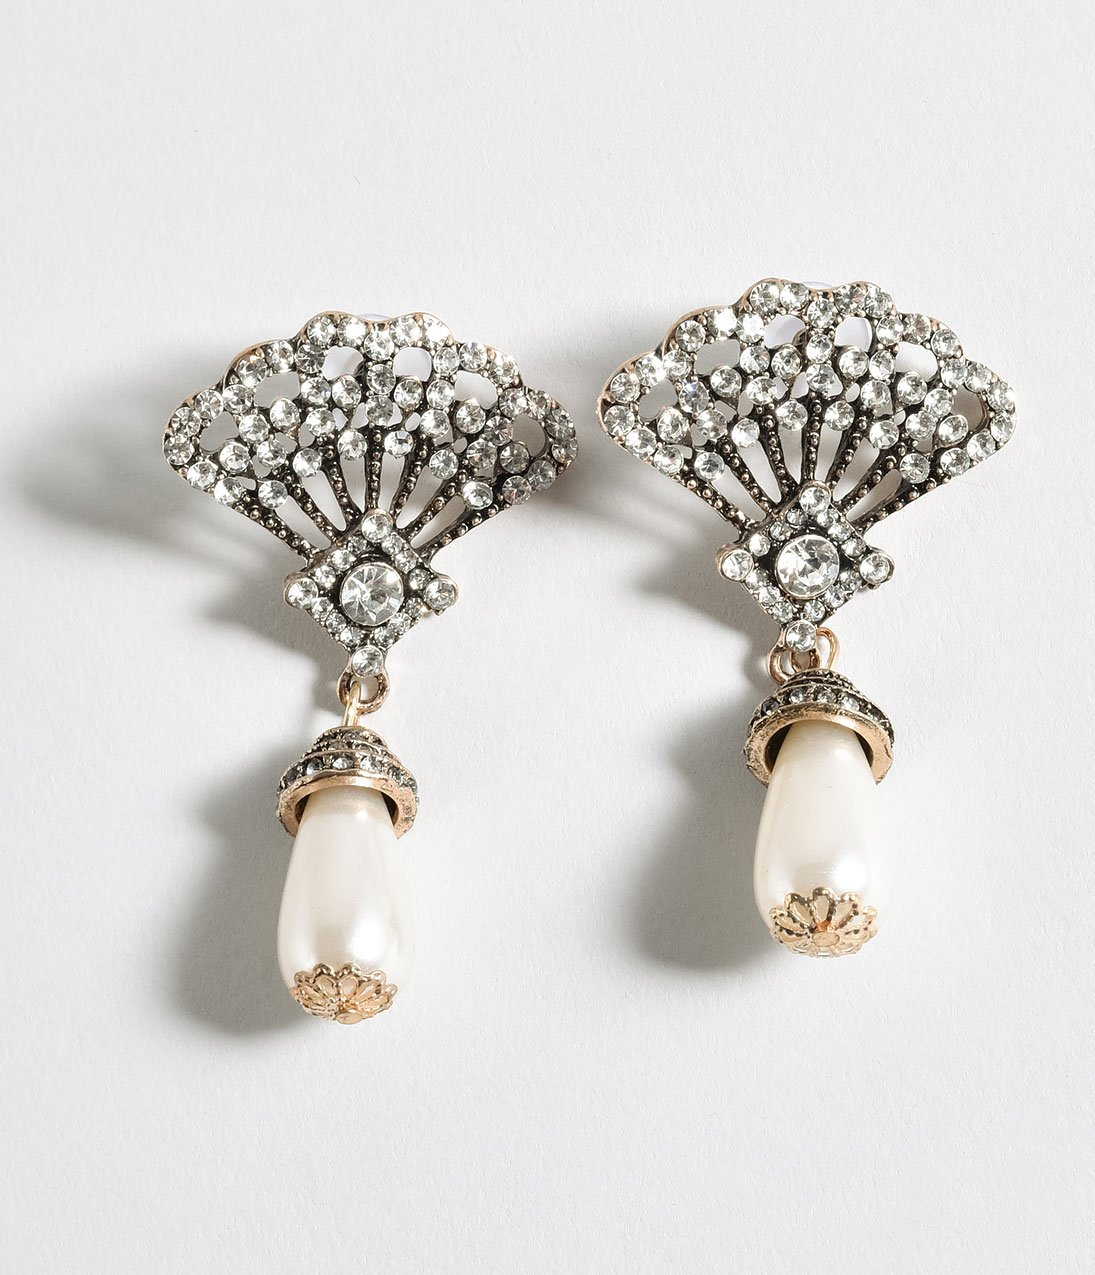 Silver_Rhinestone_Fan_Ivory_Pearl_Drop_Earrings_4.jpg